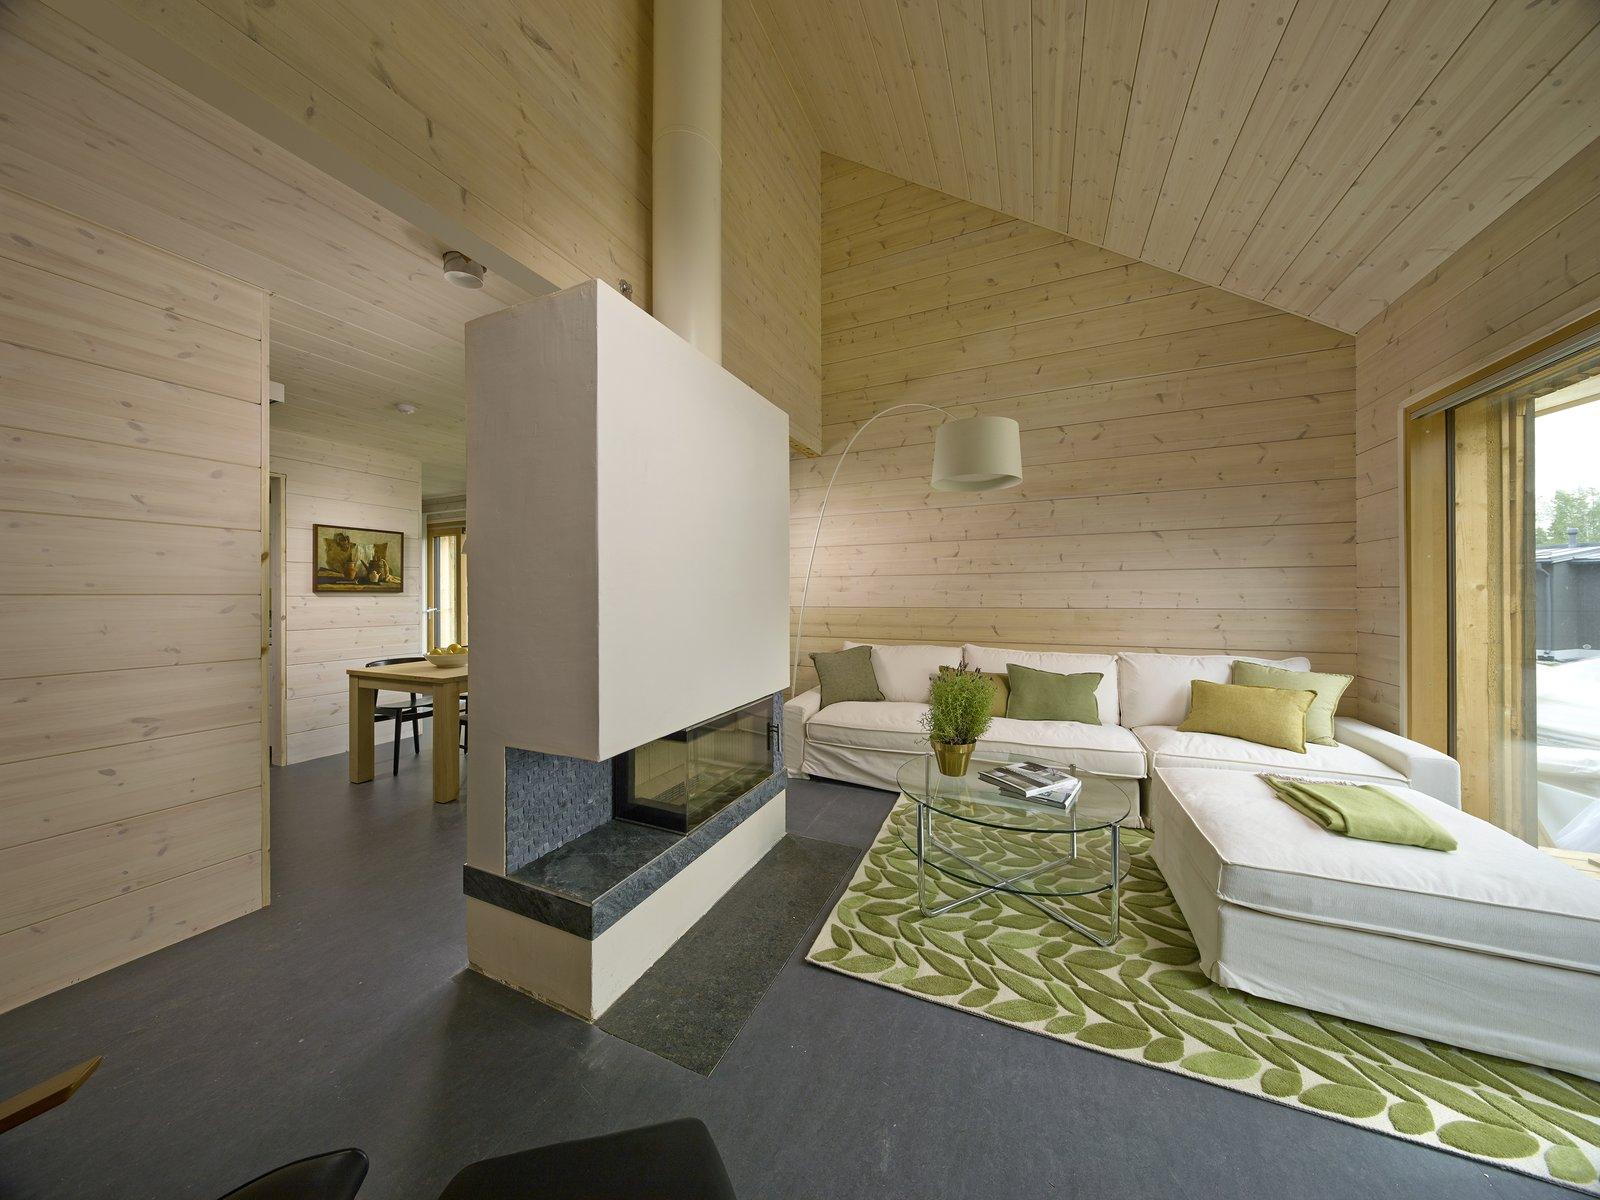 Living Room, Ribbon Fireplace, Floor Lighting, Coffee Tables, Ottomans, Sofa, Lamps, and Rug Floor A Honka Fusion log house is split into two separate living units with a shared entrance, Savukvartsi is energy efficient with very small carbon footprint.  Photo 17 of 21 in These 8 Log Cabin Kit Homes Celebrate Nordic Minimalism